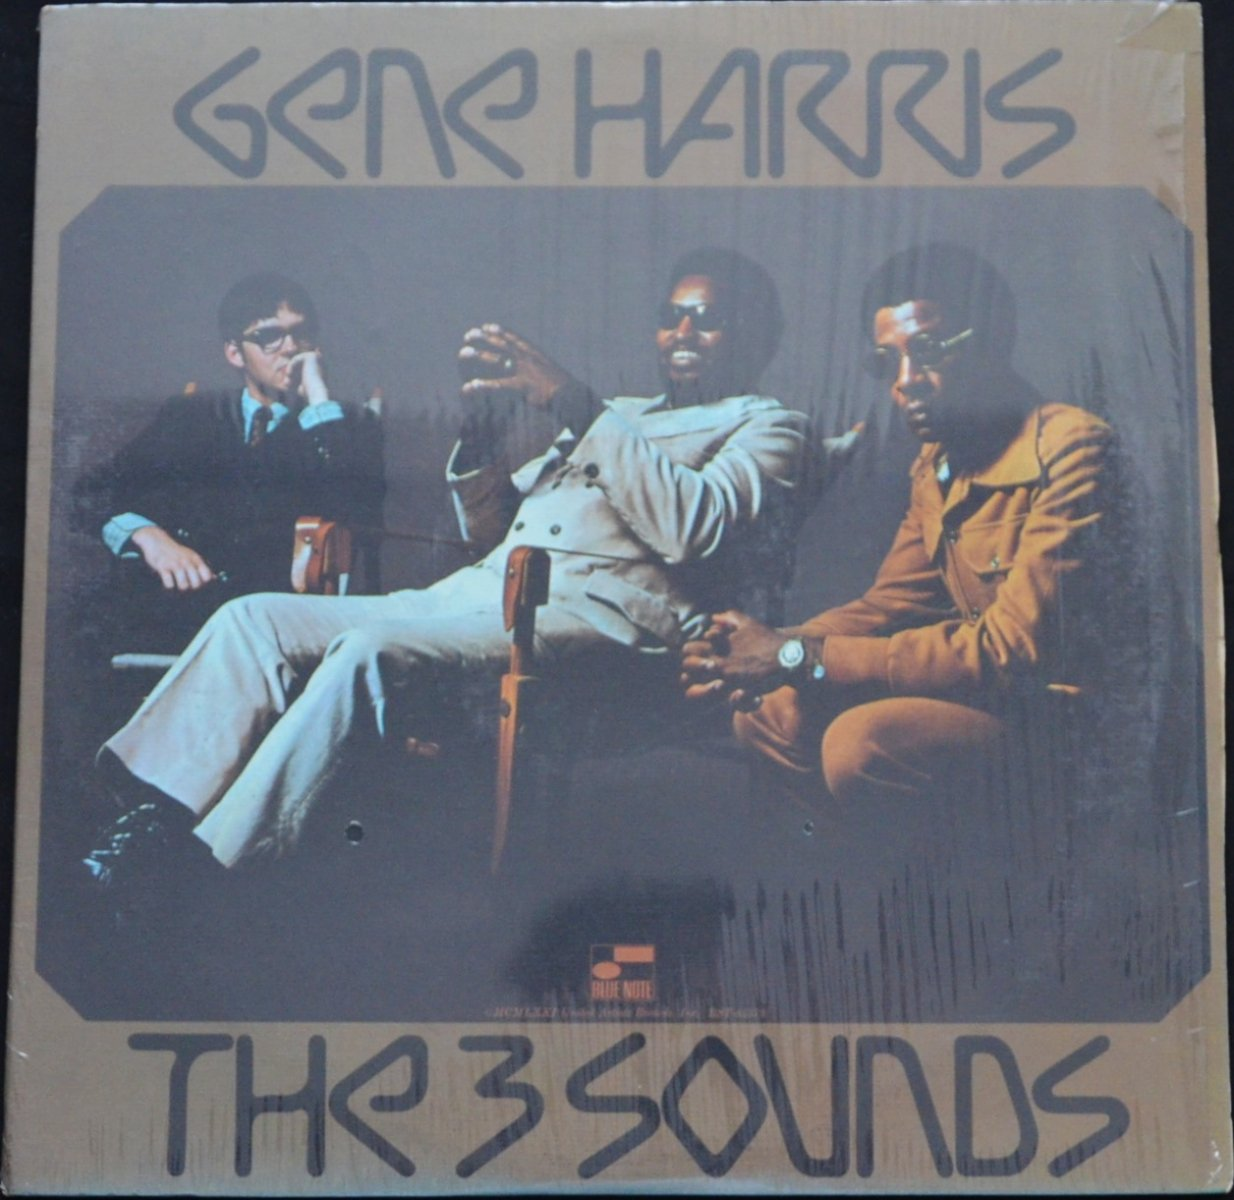 GENE HARRIS & THE 3 SOUNDS / GENE HARRIS THE 3 SOUNDS (LP)